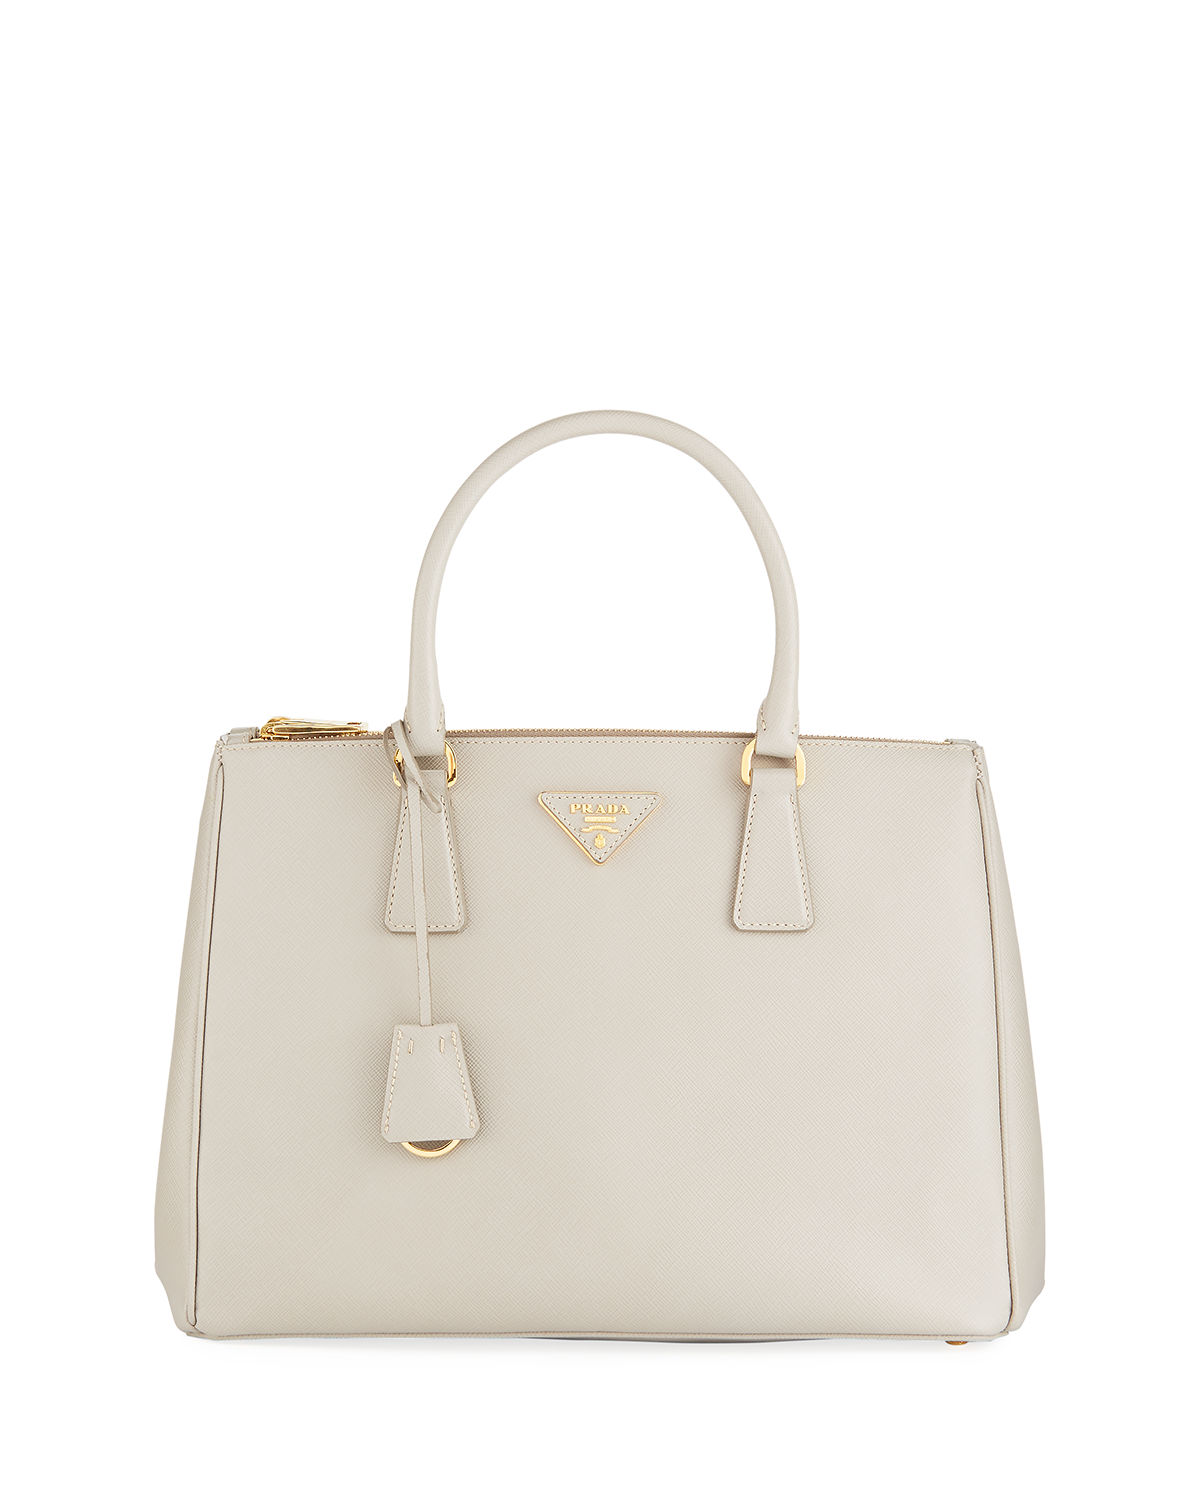 Prada Galleria Medium Saffiano Tote Bag  072065a11f2e3